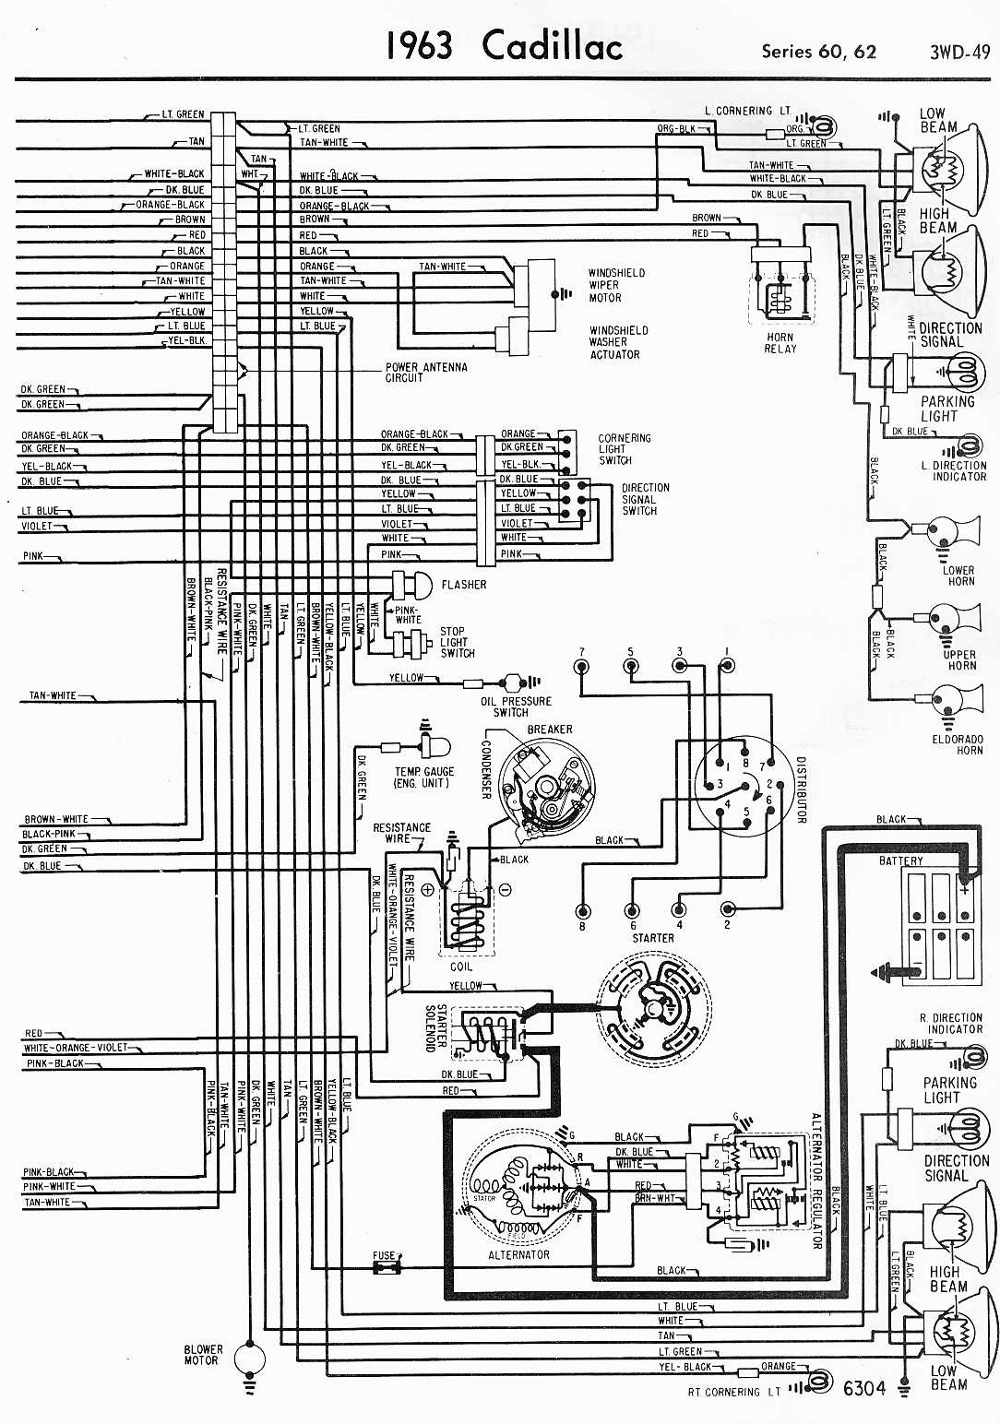 small resolution of bose stereo wiring diagram 93 cadillac wiring library1959 cadillac radio diagram 1959 get free image about